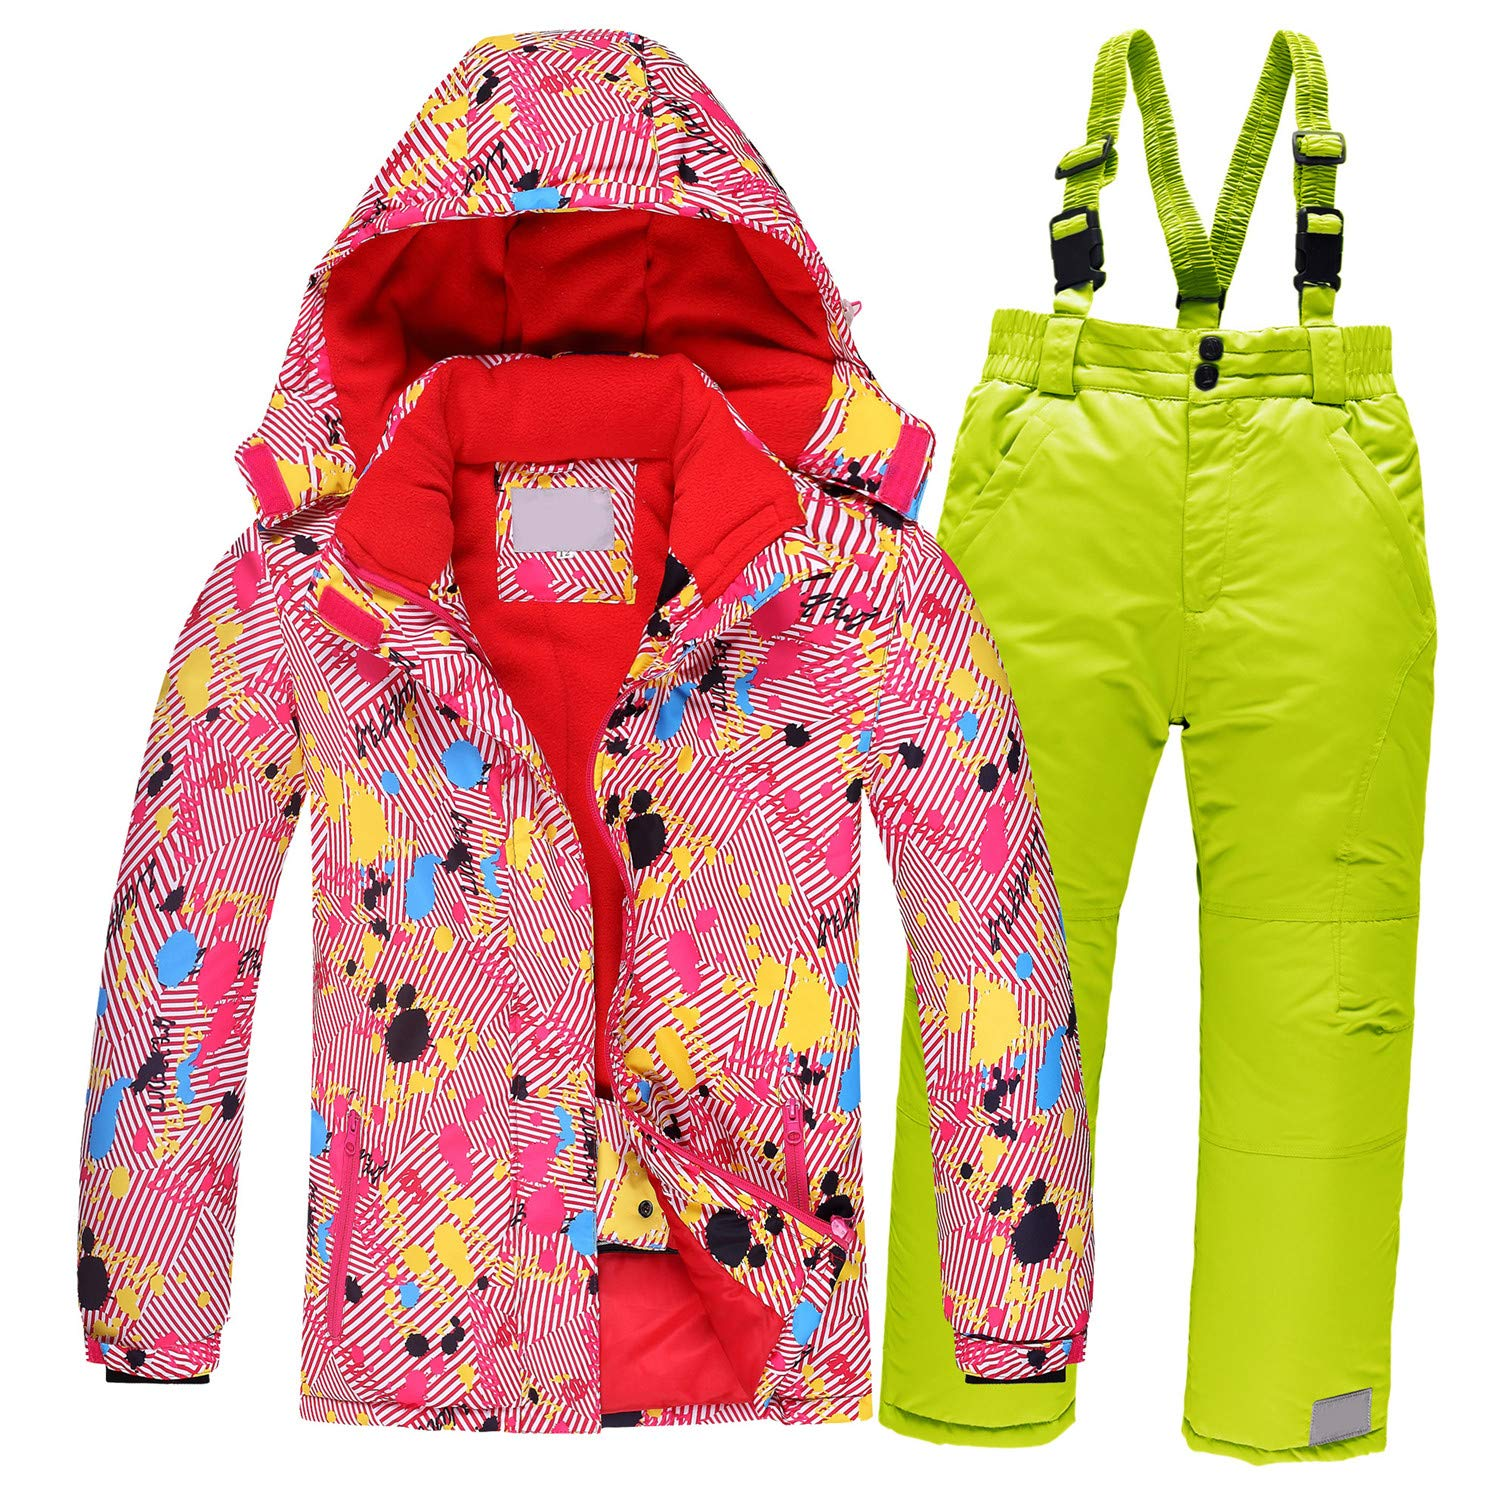 Children Ski Suit Windproof Warm Girls Clothing Set Jacket Overalls Boys Clothes 3-16 Years